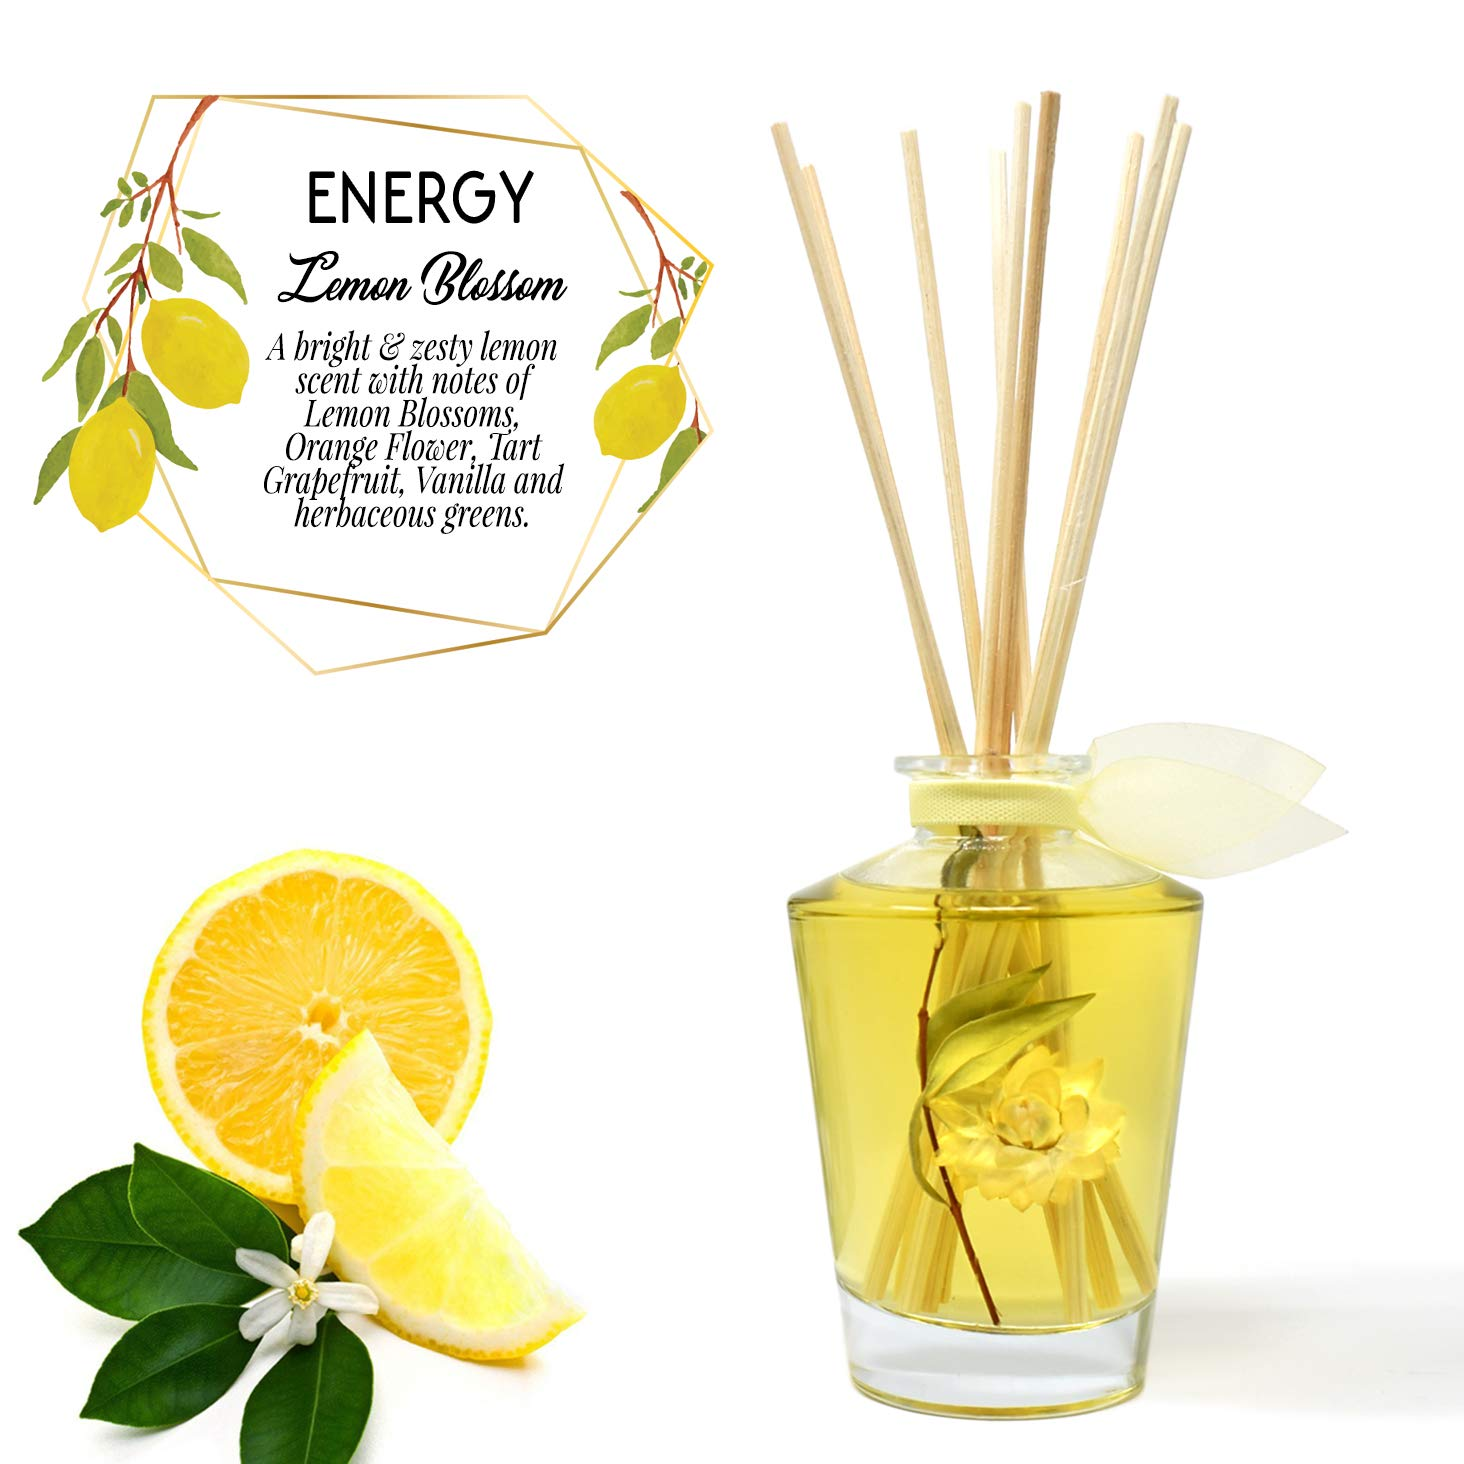 Energy-Lemon-Blossom-3